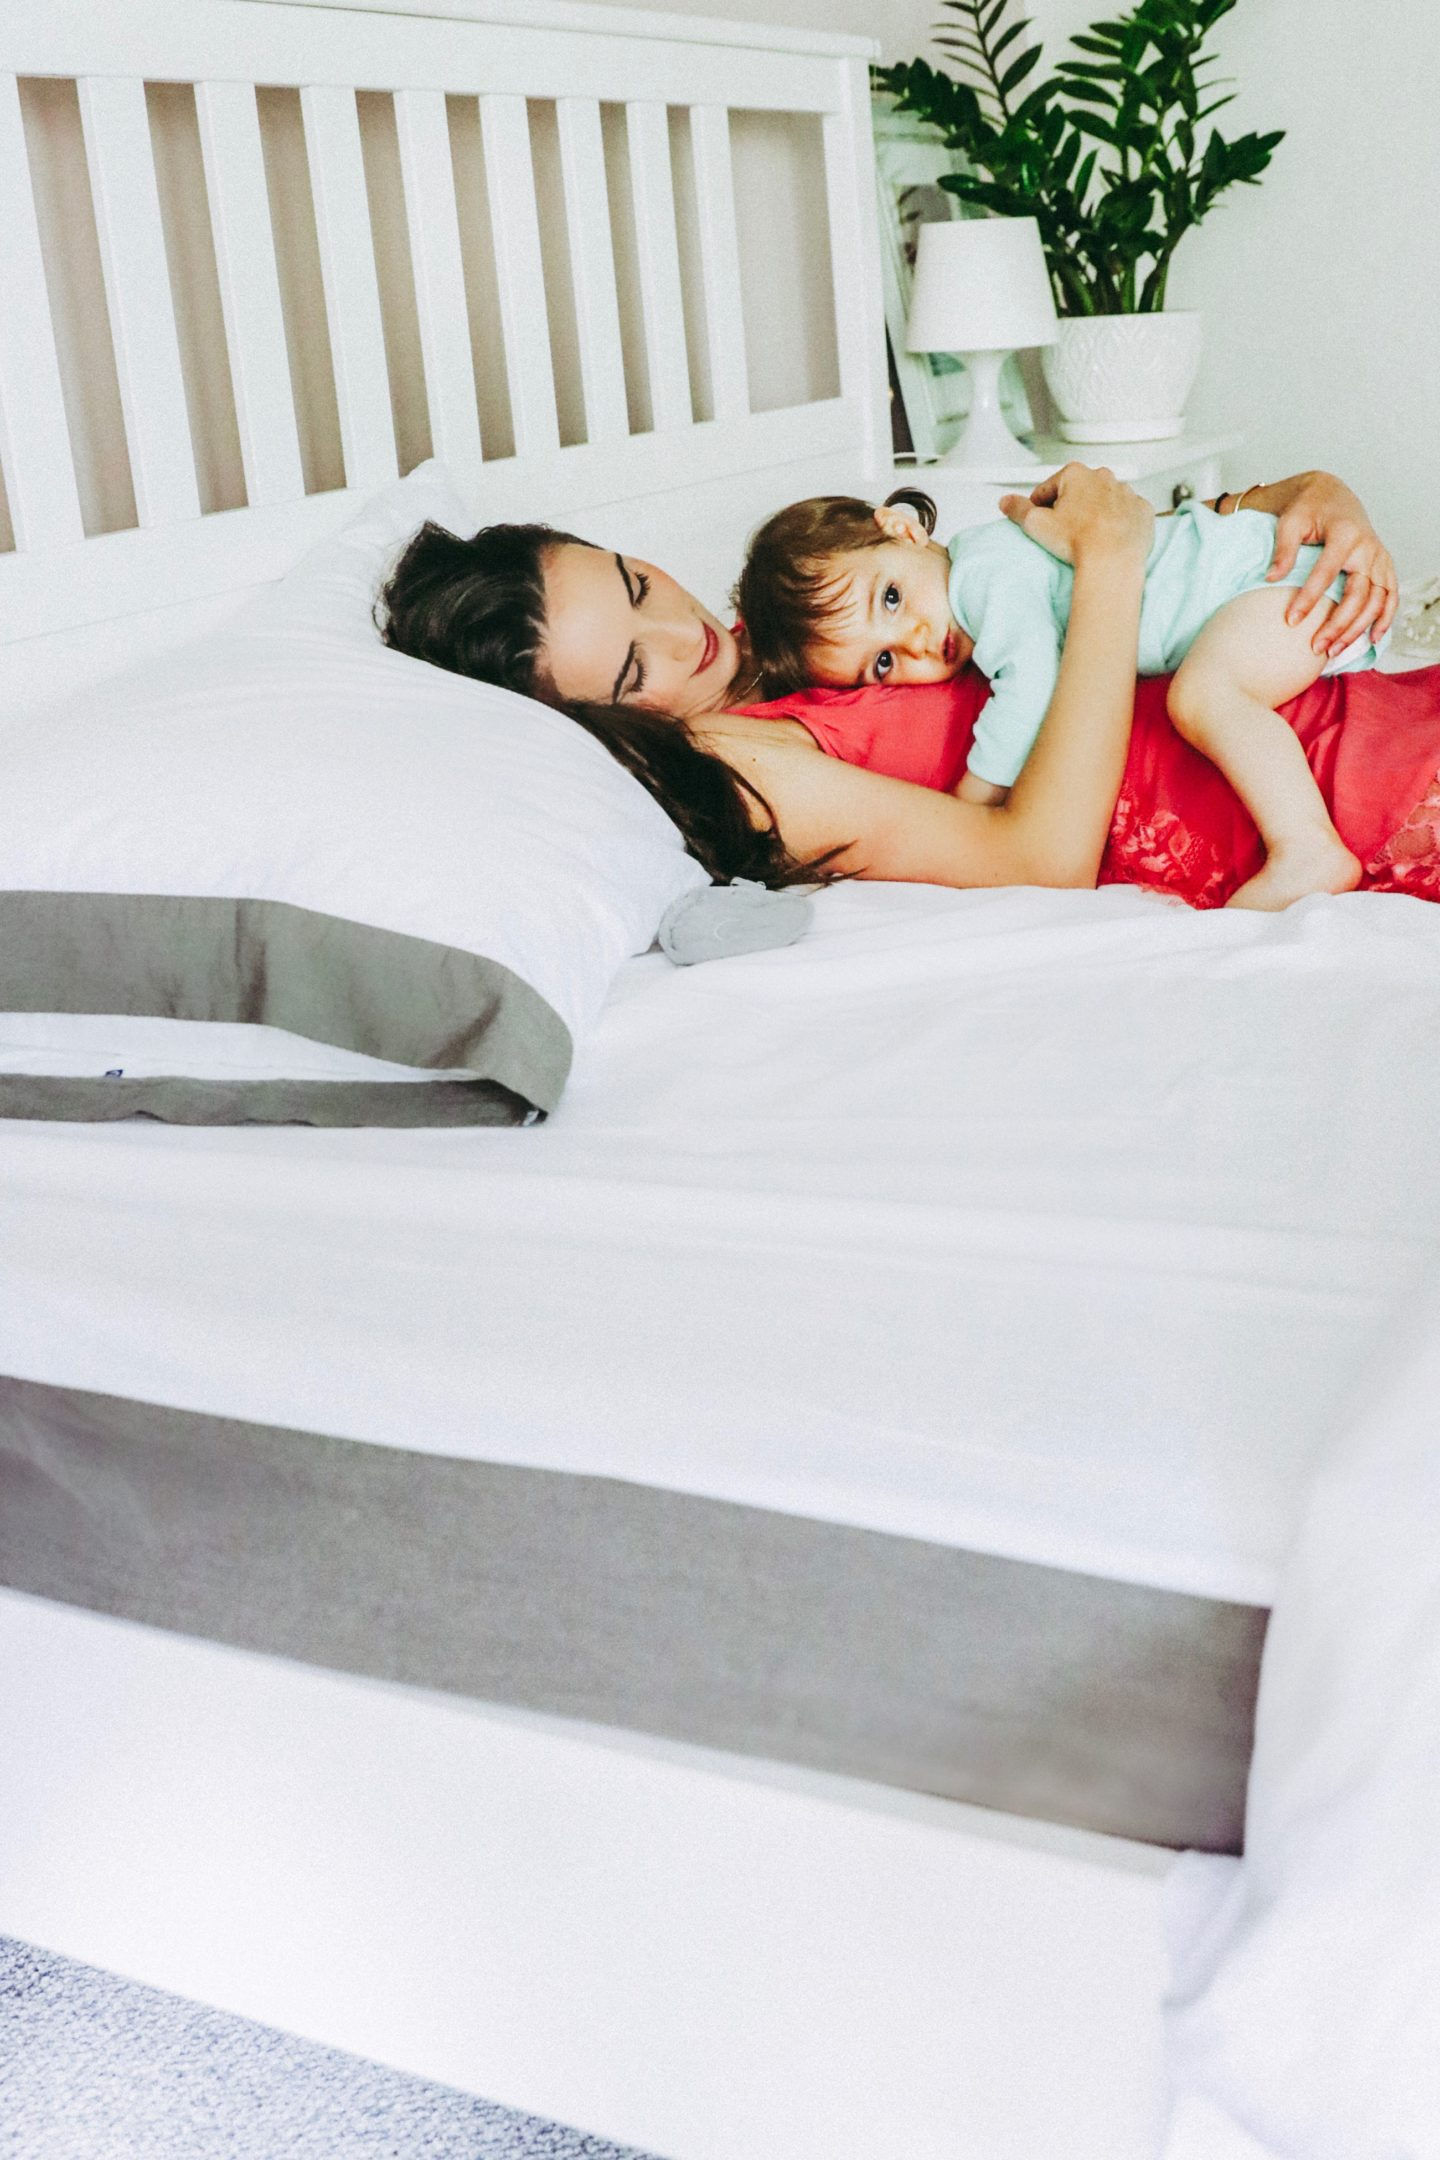 The Casual Free: 4 Ways To Get More Sleep With Kids